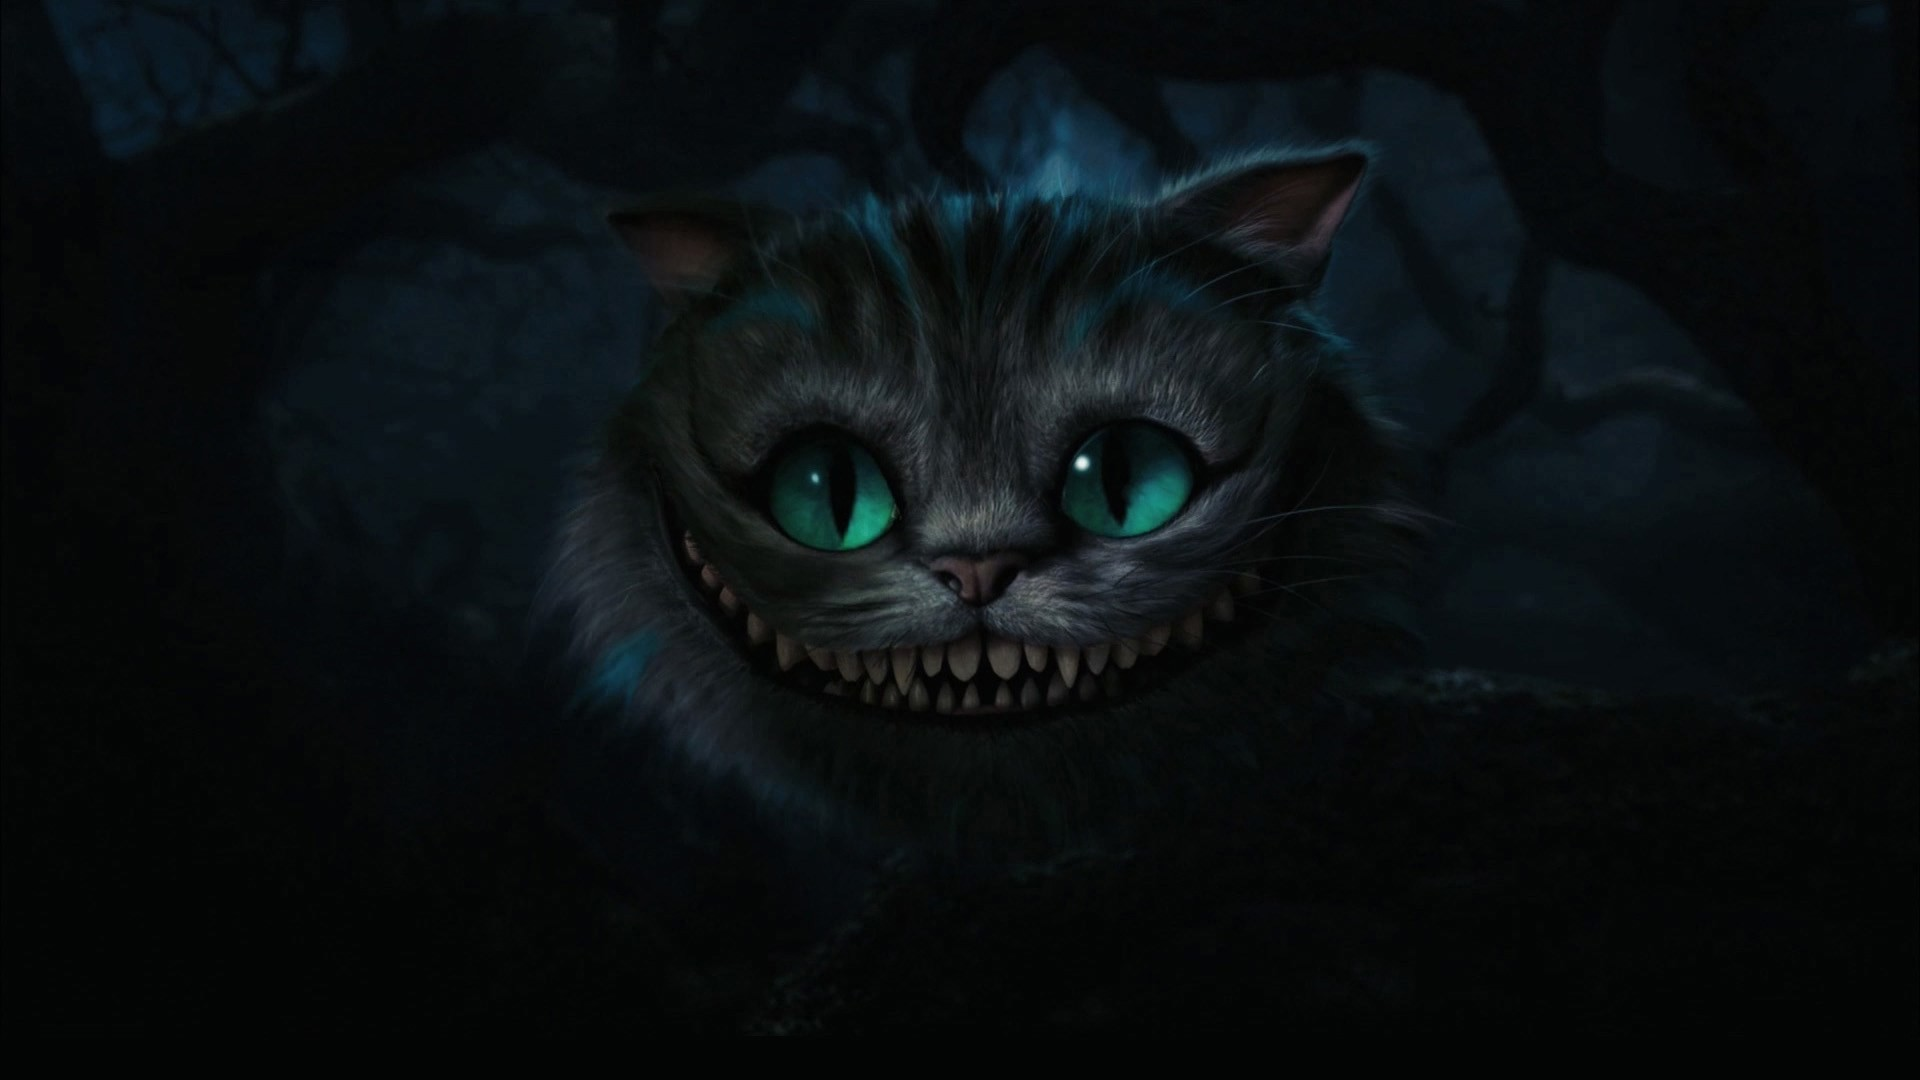 … Amazing Cheshire Cat Live Wallpaper HD Wallpapers of Nature- Full HD  1080p Desktop Backgrounds for Cool …